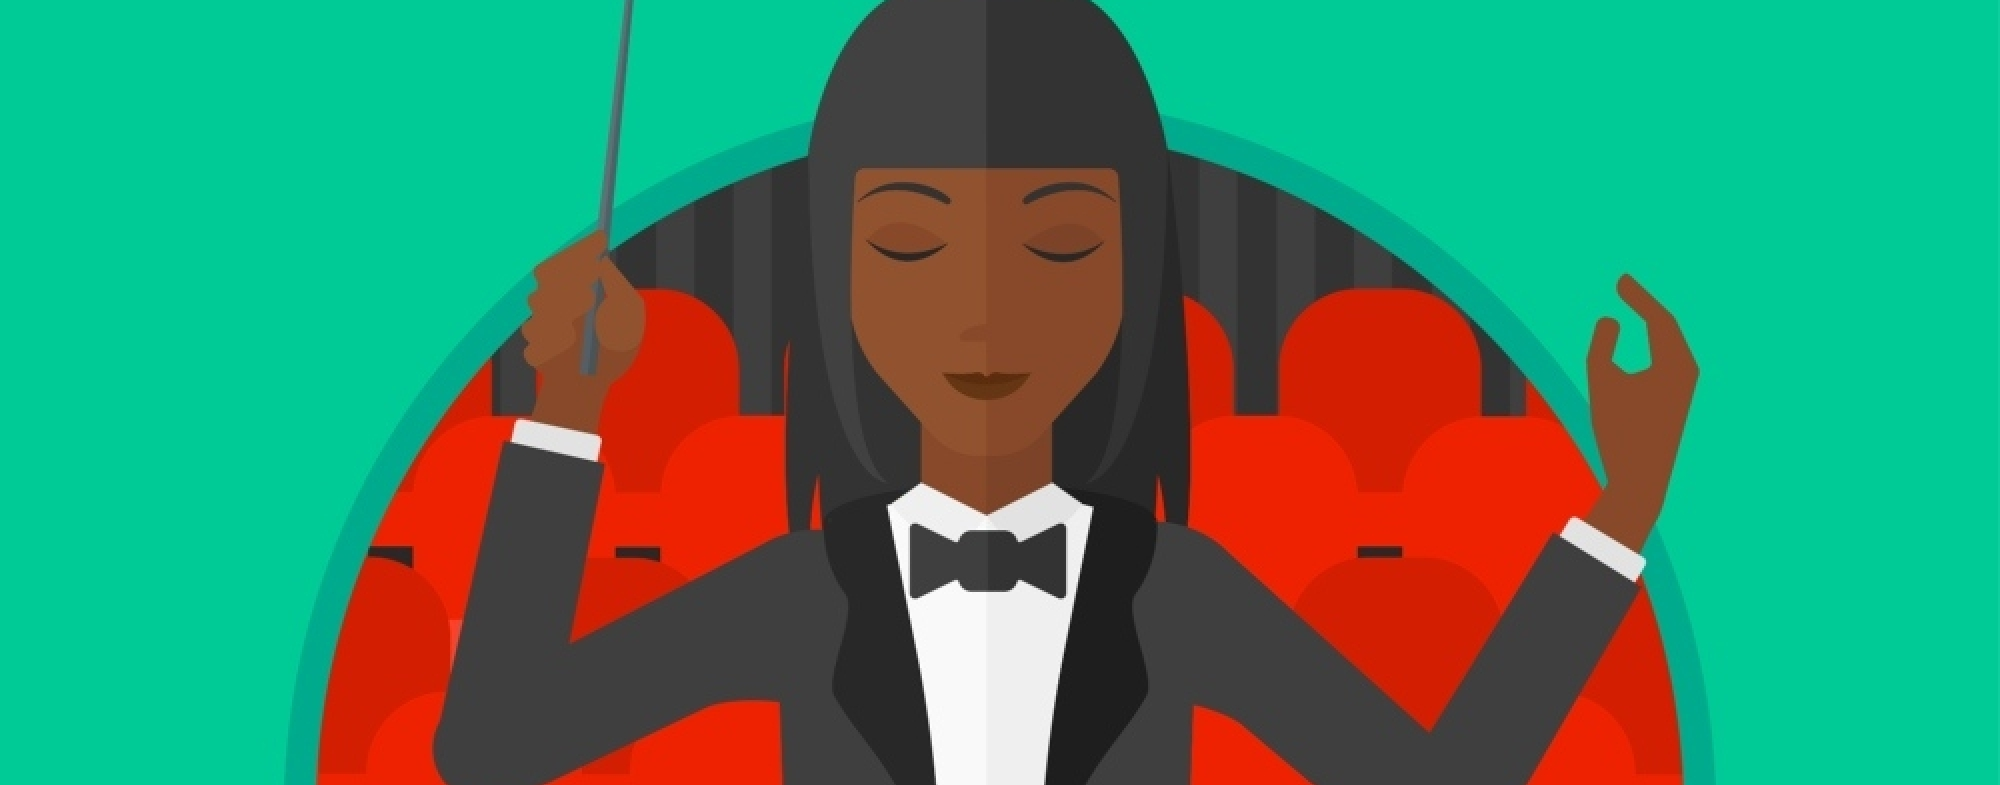 Illustration of a female conductor on a turquoise background.